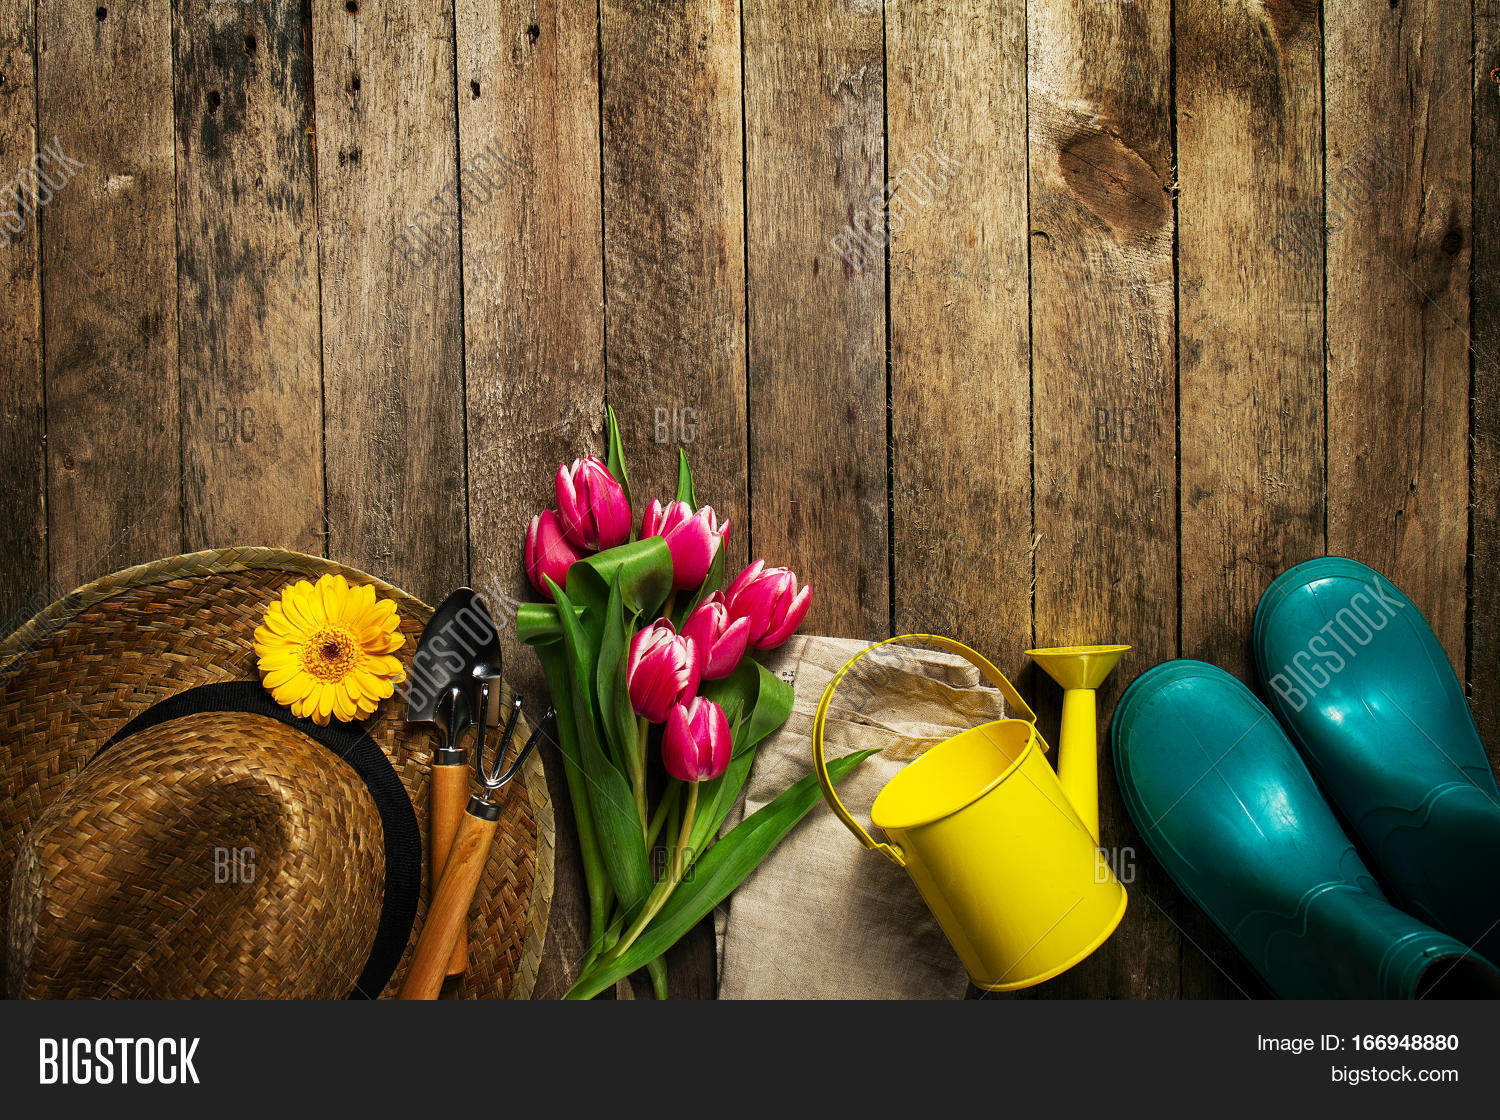 Gardening tools image photo free trial bigstock gardening tools flowers watering can rubber boots and straw hat on vintage wooden table spring mightylinksfo